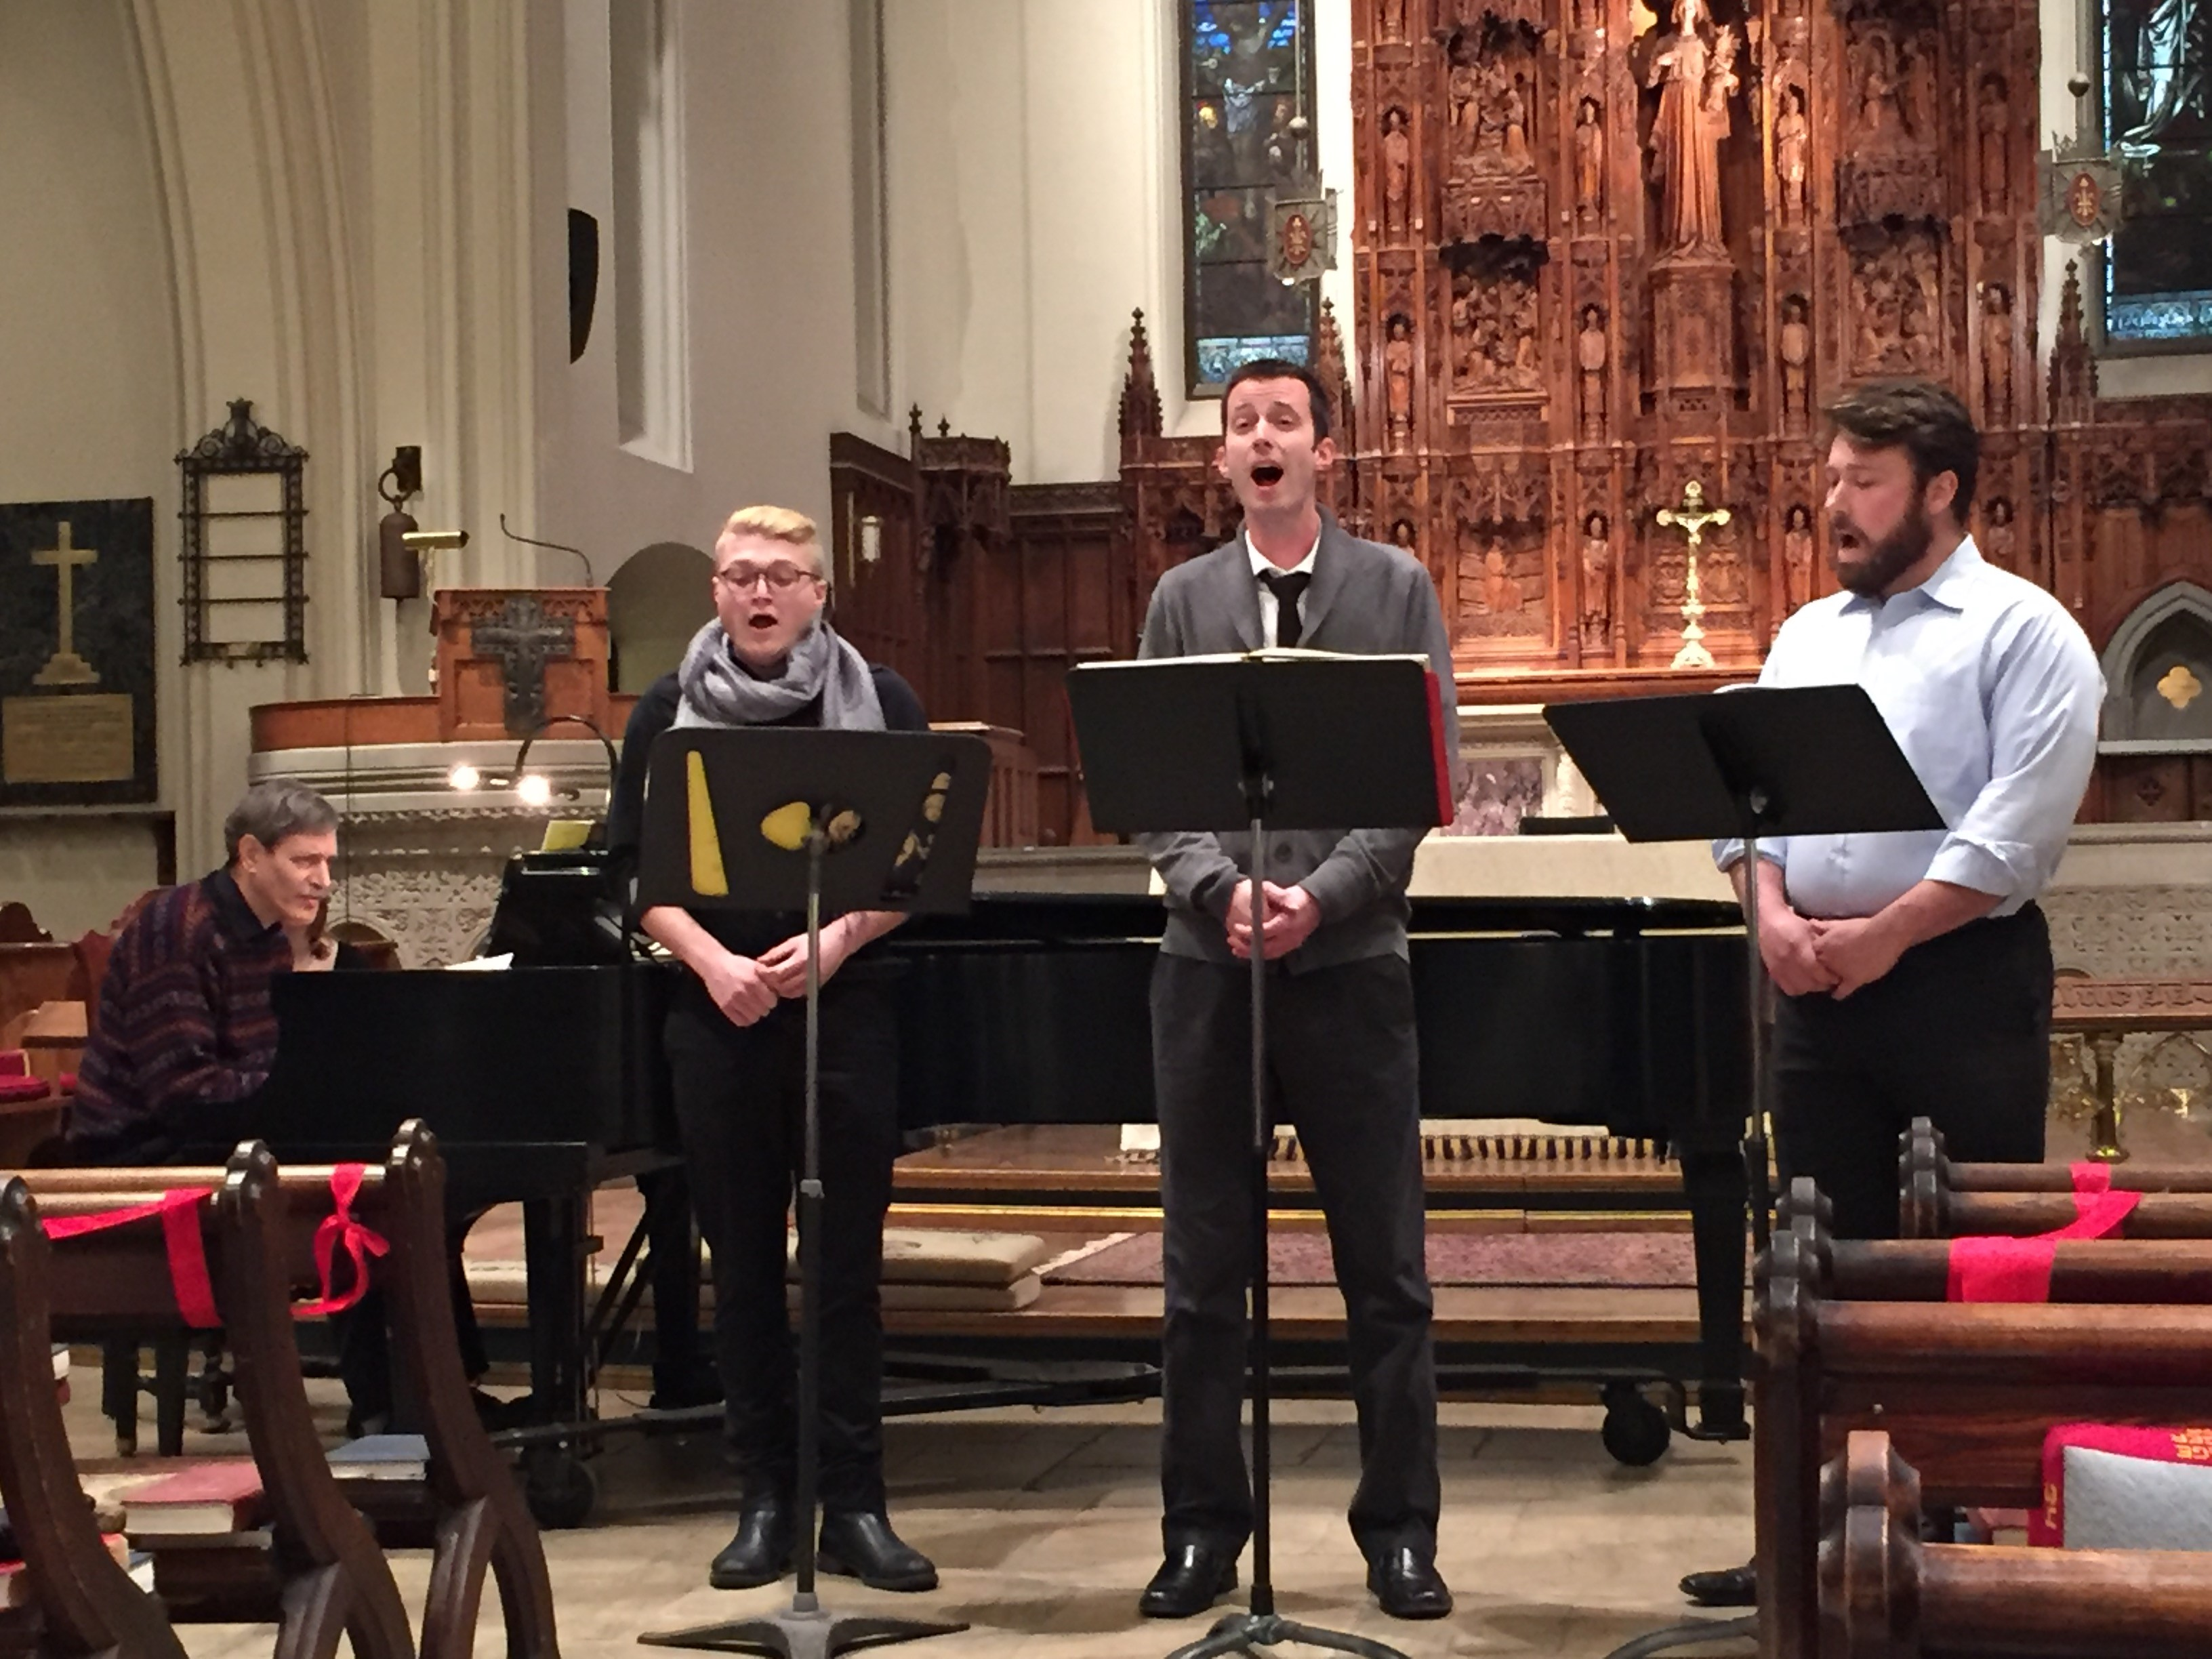 A performance at the Cathedral of St. Luke's in Portland.